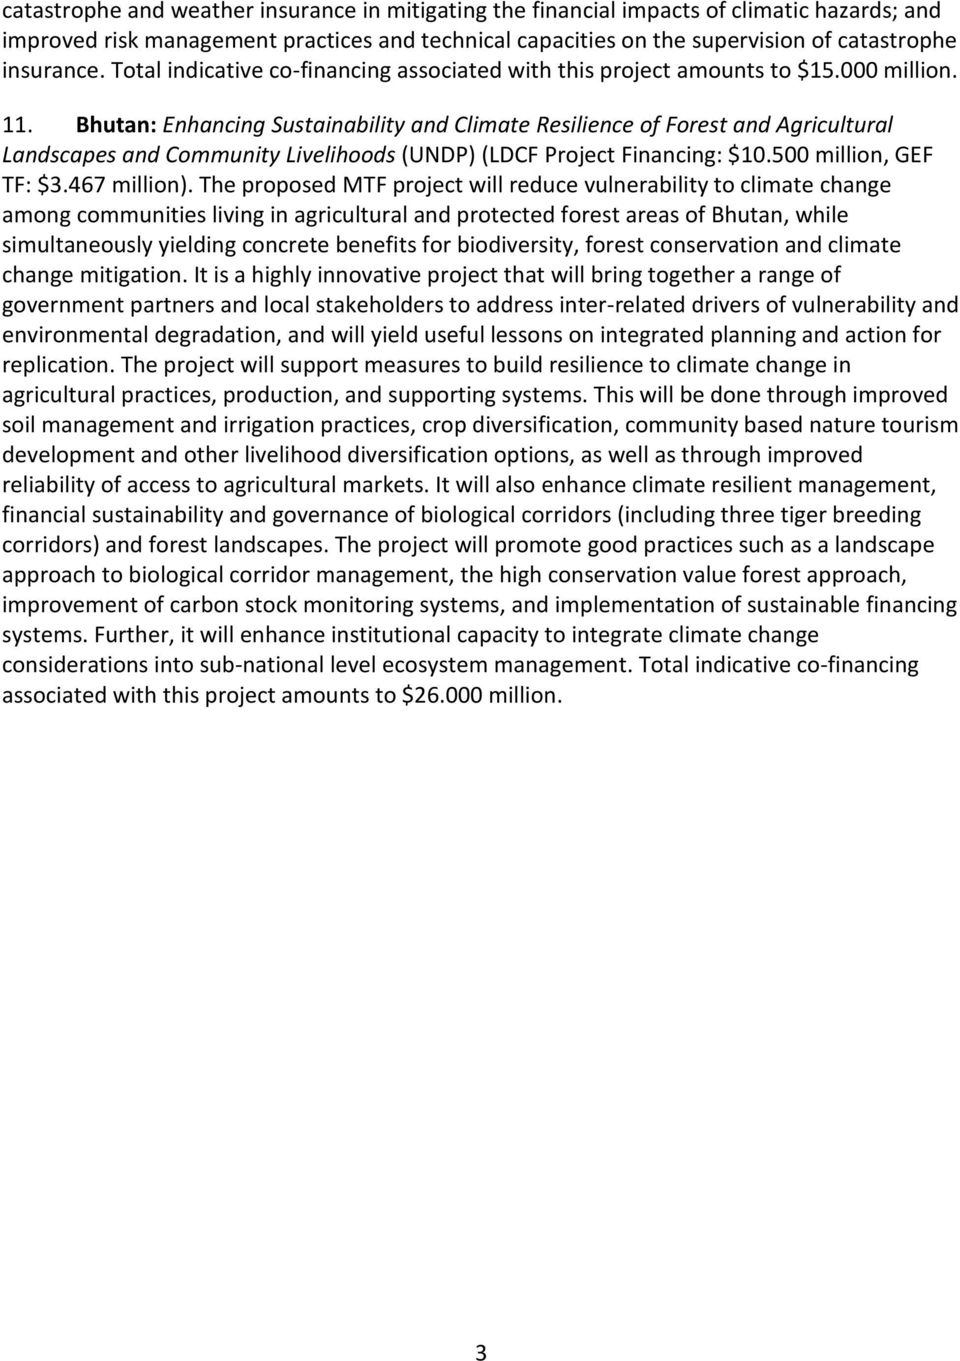 Bhutan: Enhancing Sustainability and Climate Resilience of Forest and Agricultural Landscapes and Community Livelihoods (UNDP) (LDCF Financing: $10.500 million, GEF TF: $3.467 million).